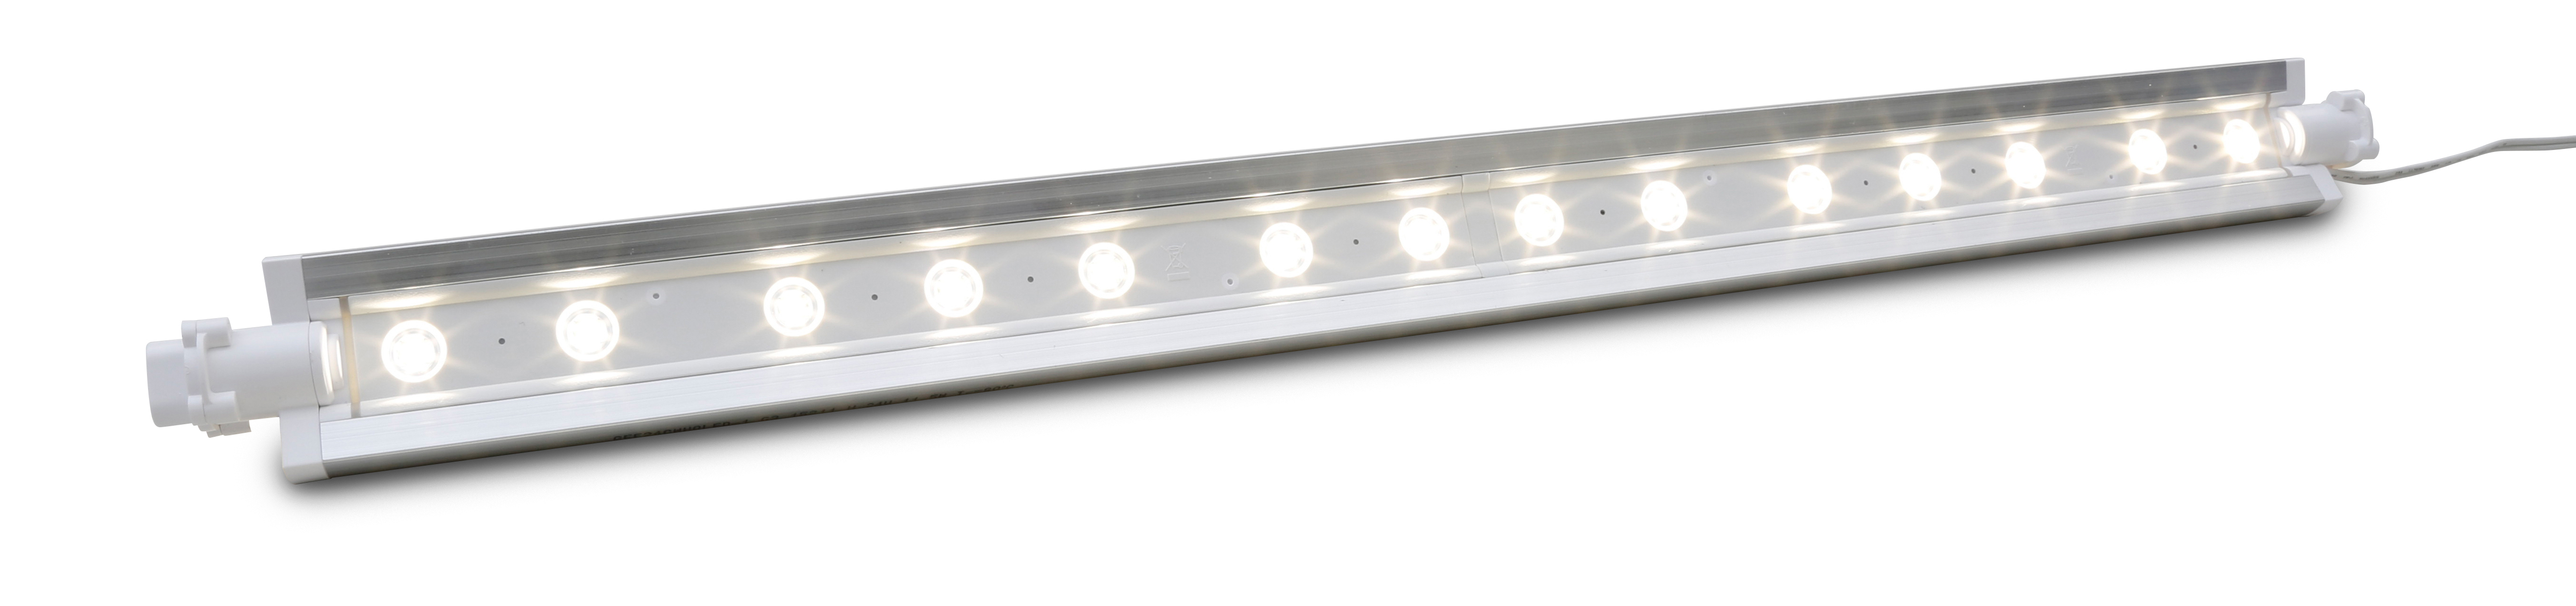 "GE LineFit Lighting System 84"" - 6 Modules"